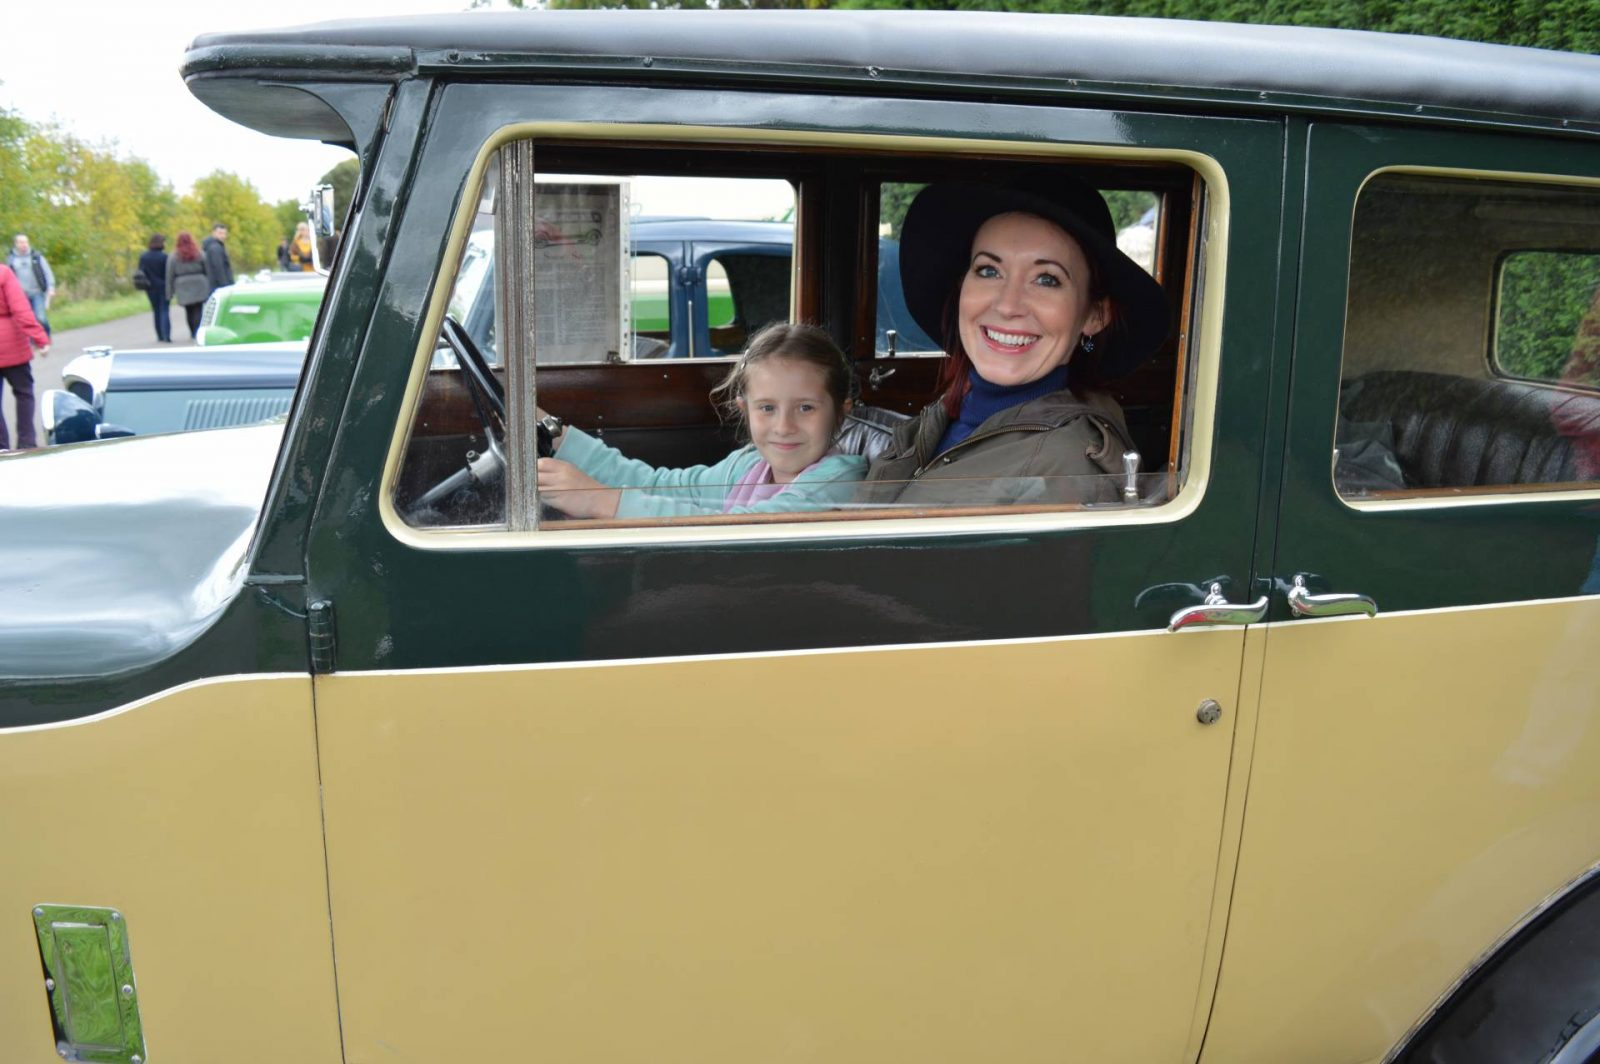 'Life on the Holme Front' 1940s Weekend vintage singer car